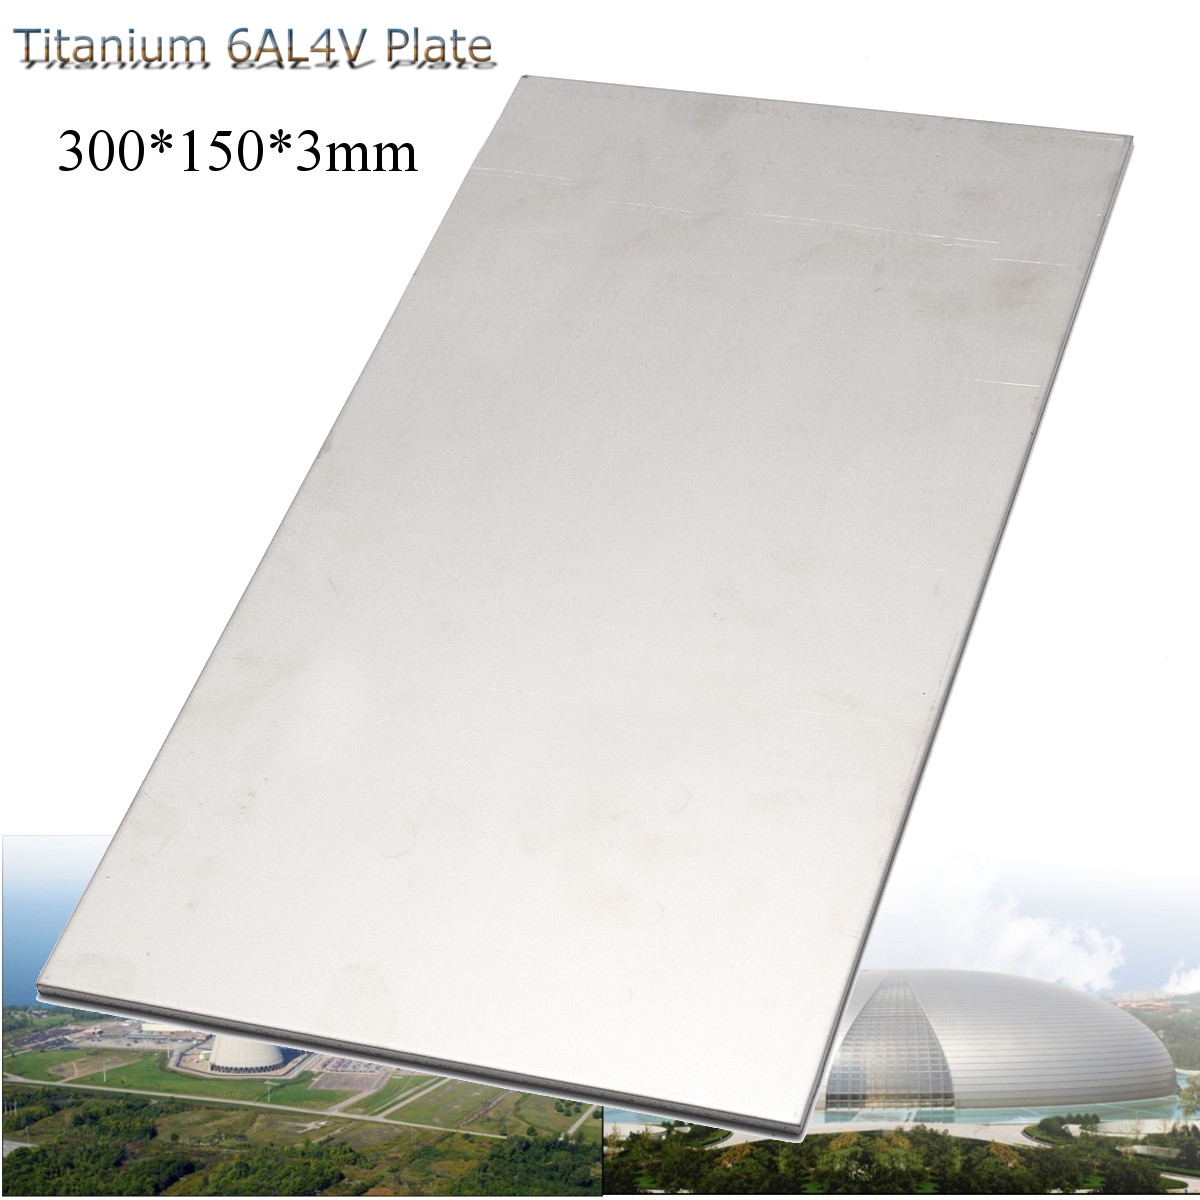 300X150X3mm Thick Titanium 6al-4v Sheet Grade Plate Titanium Metal Sheet Plate Silver Metalwoking Craft Titanium New